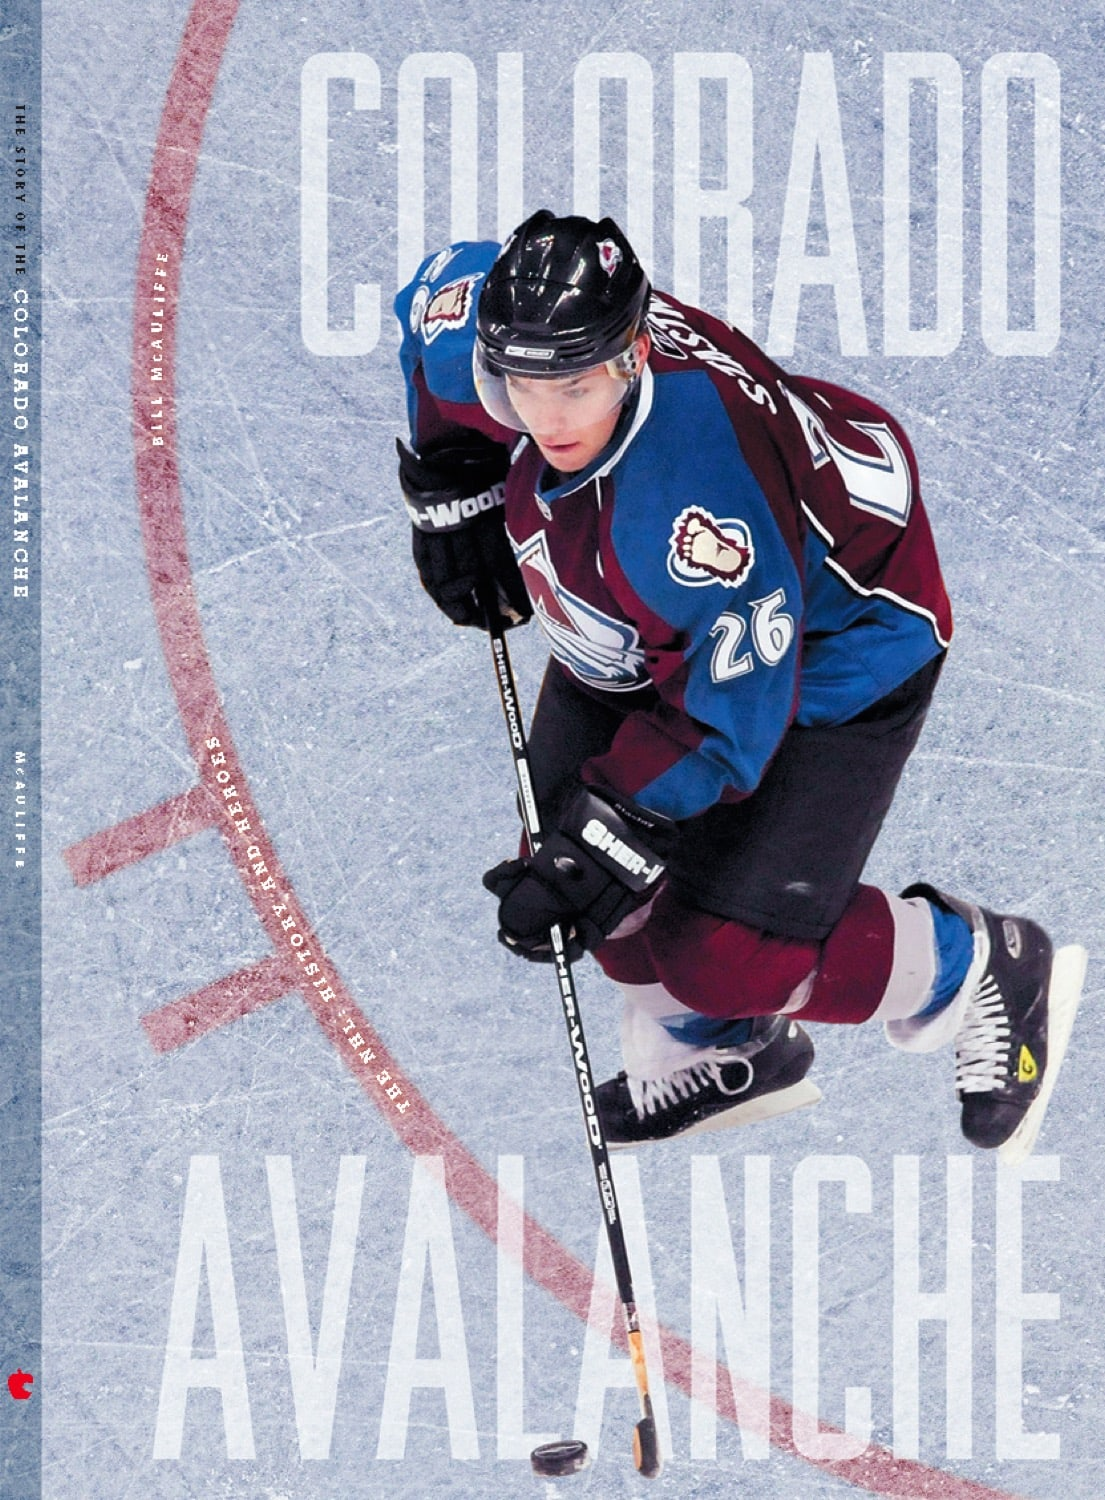 The NHL: History and Heroes: The Story of the Colorado Avalanche